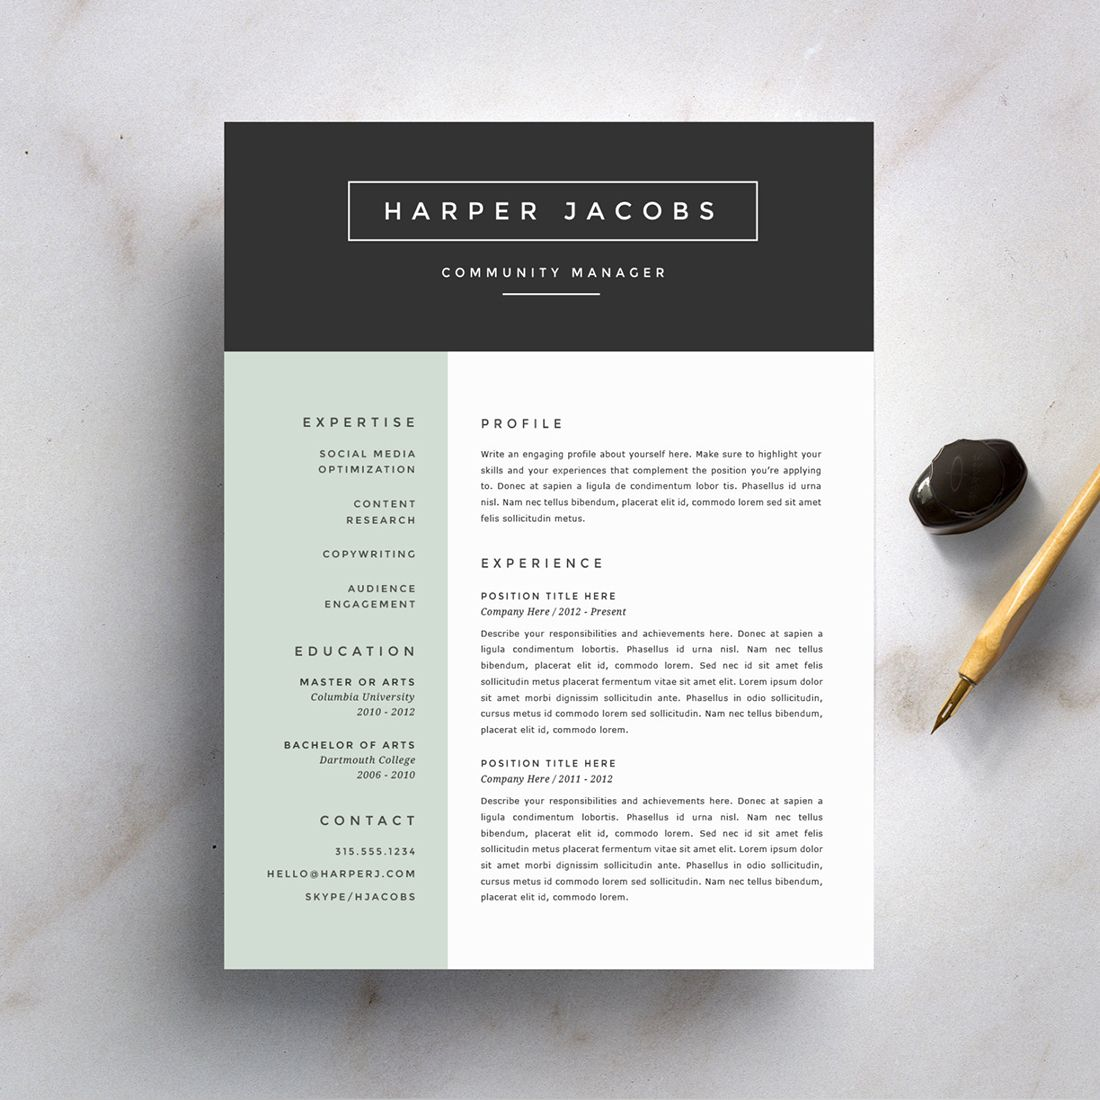 Design the ultimate resume with these tips. | Resumes | Pinterest ...